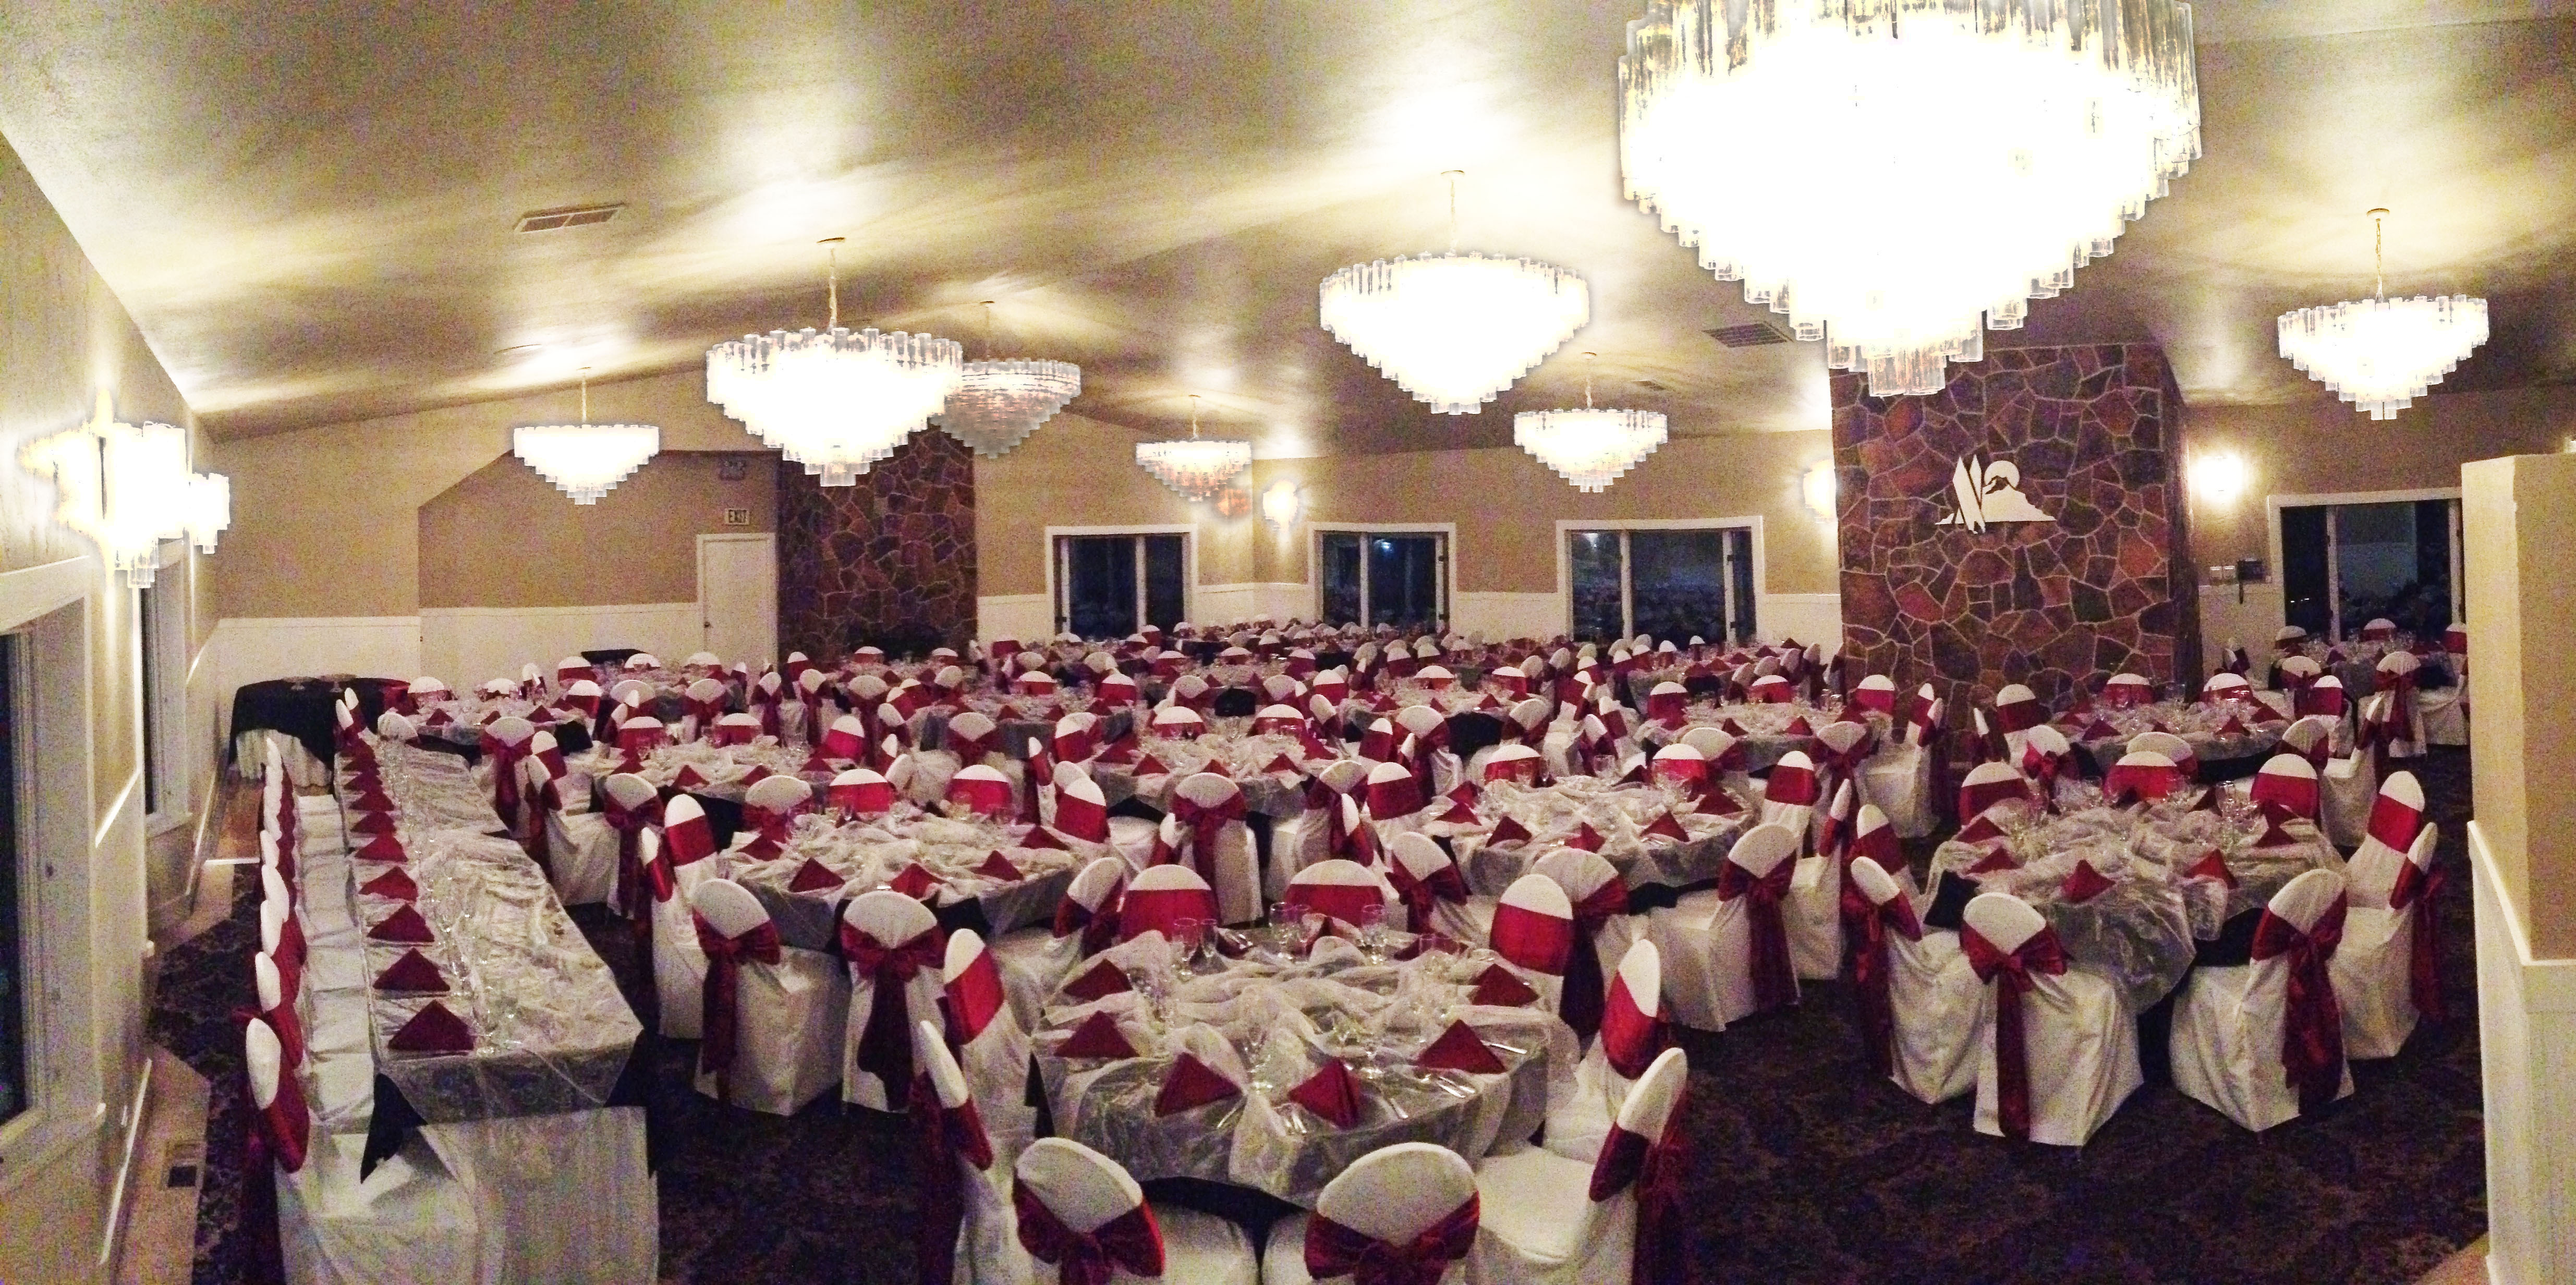 burgundy chair covers wedding padded chairs for sale weddings at eagle hills golf course